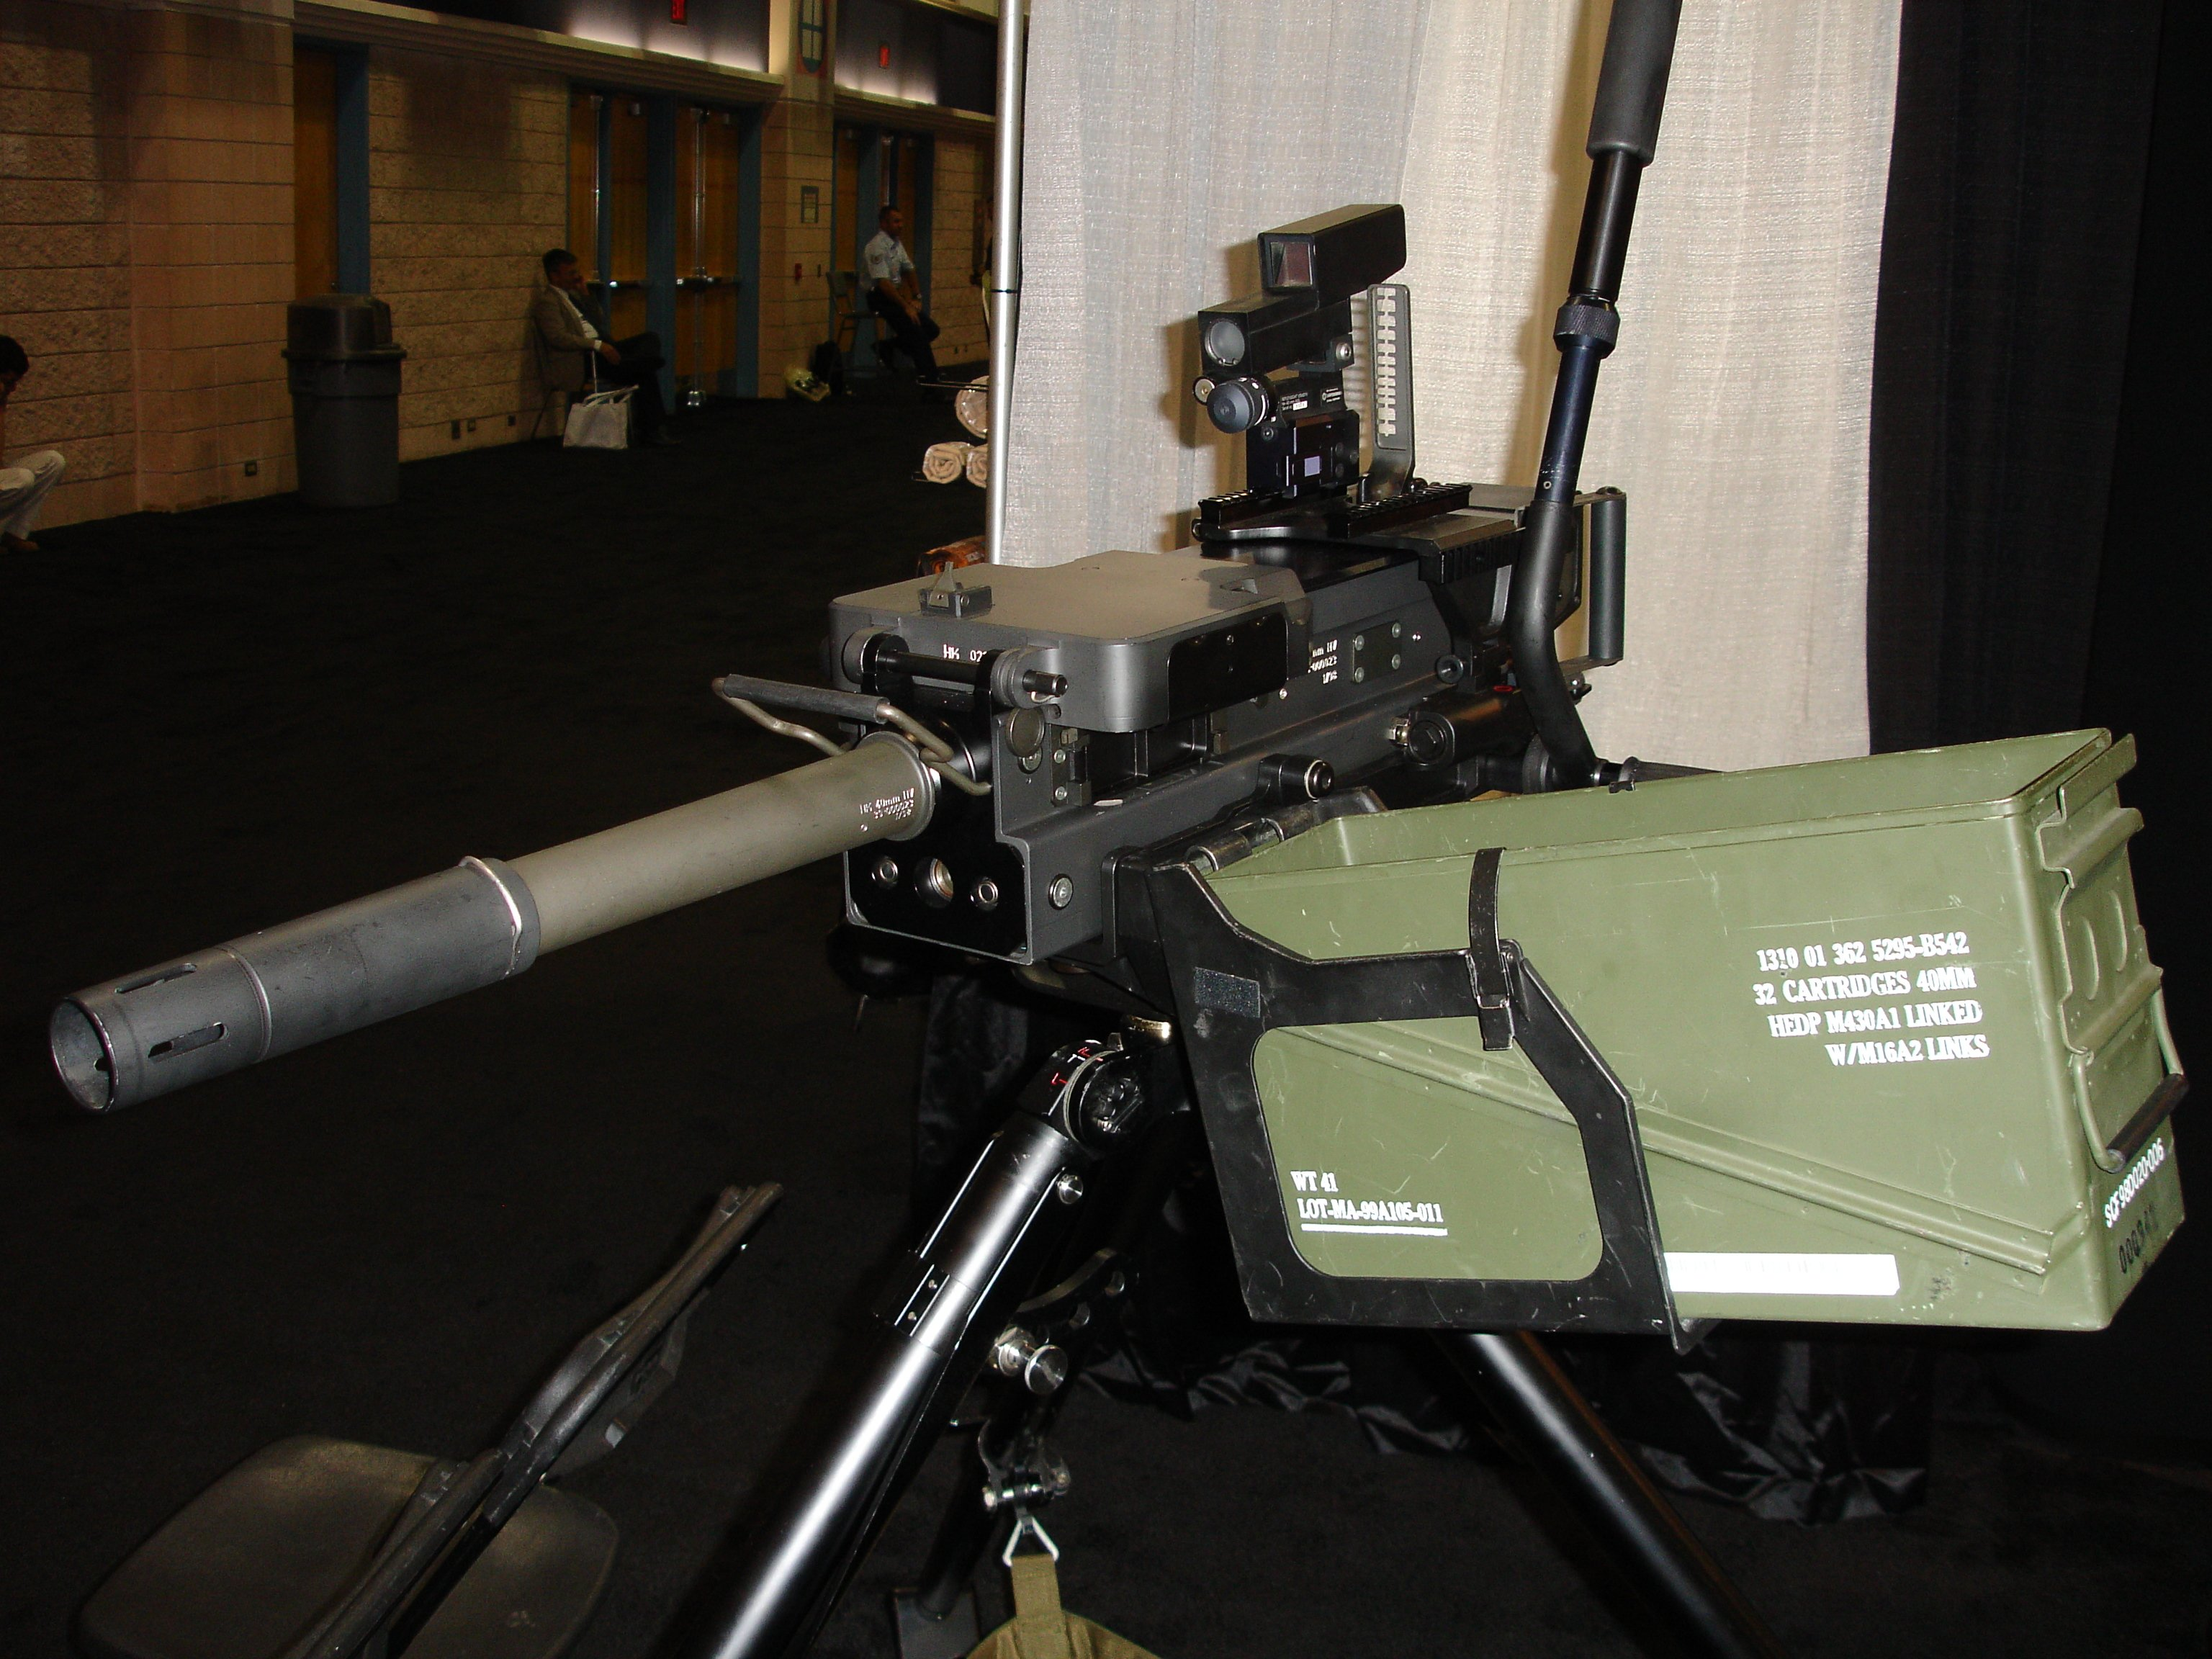 HK%20Grenade%20Machine%20Gun%20%28GMG%29 1 <!  :en  >HK GMG (Grenade Machine Gun) Pics from SOF Week 2005/APBI<!  :  >